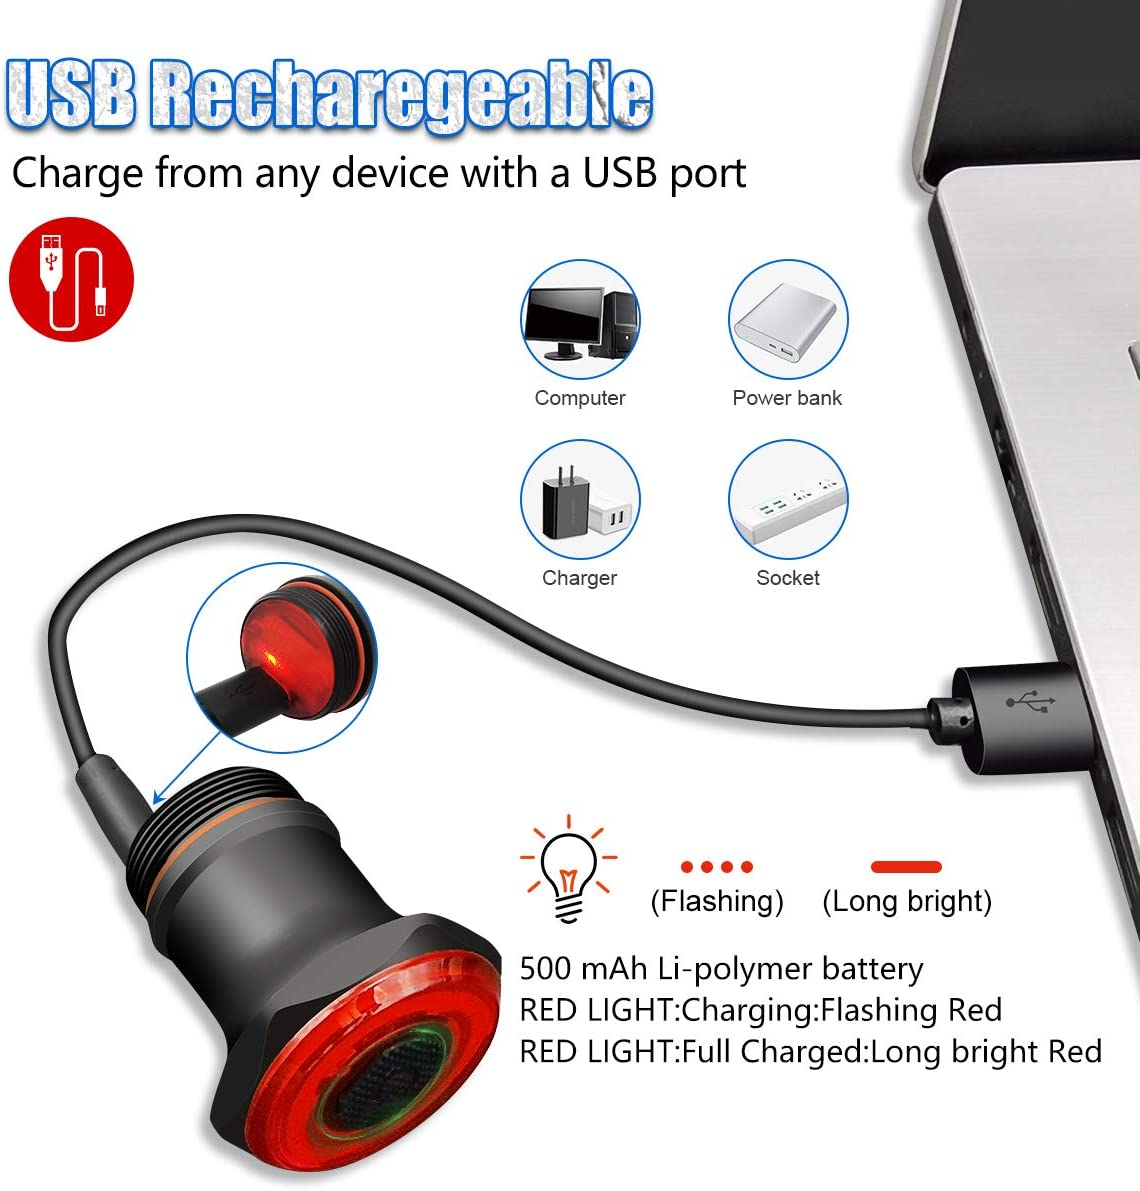 IPX6 Waterproof with 7 Light Modes Bicycle Tail Light for Any Road Bikes GXIN USB Rechargeable LED Smart Bike Tail Light Auto On//Off Light Sensing Ultra Bright Brake Sensing Rear Bike Light